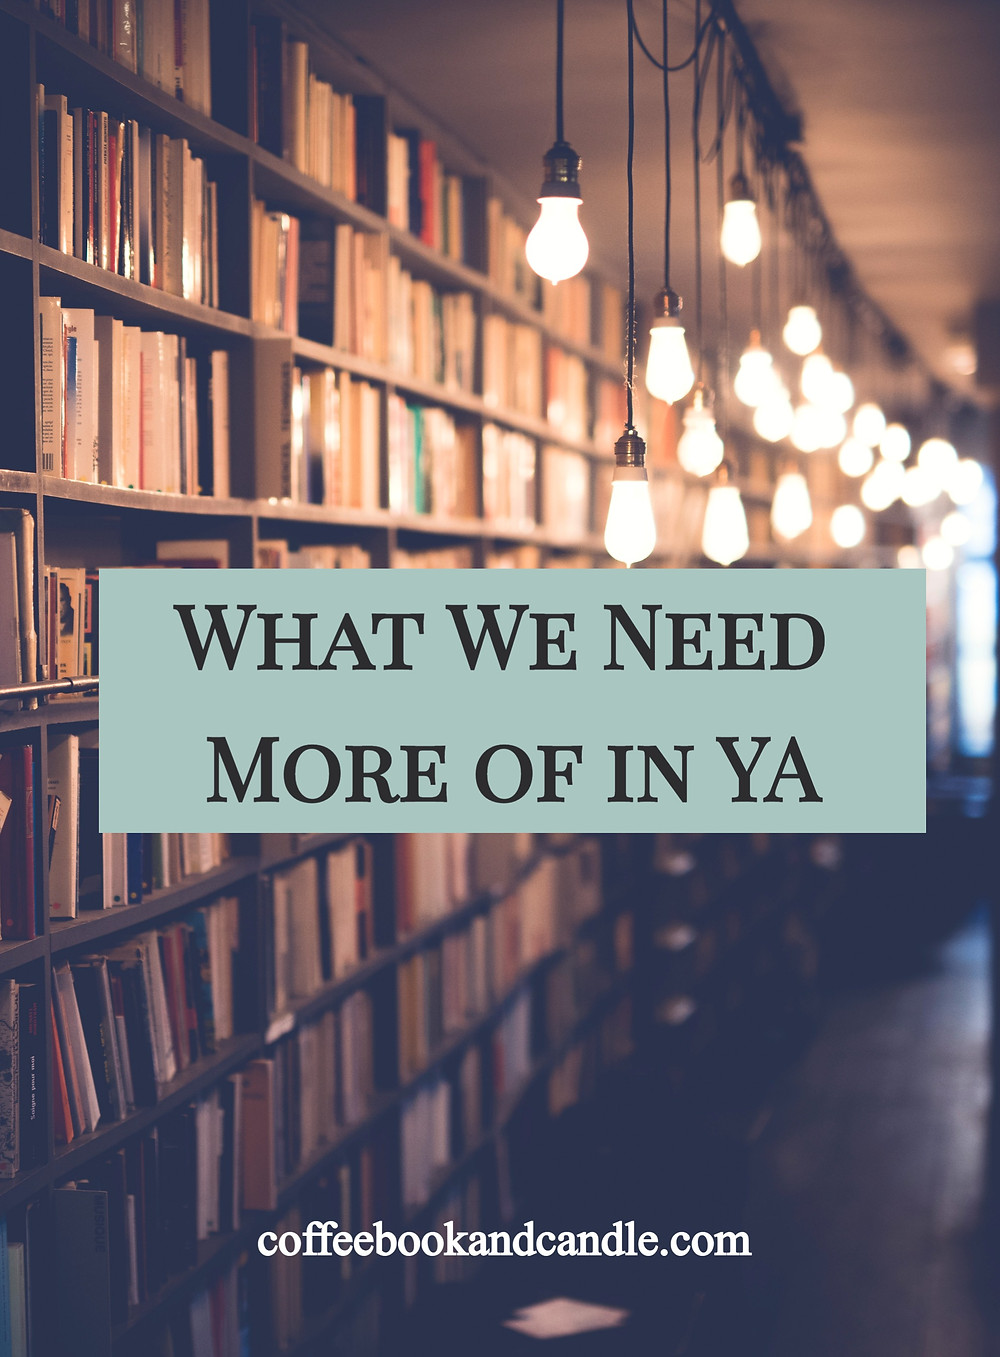 What We Need More of in YA Coffee, Book, and Candle